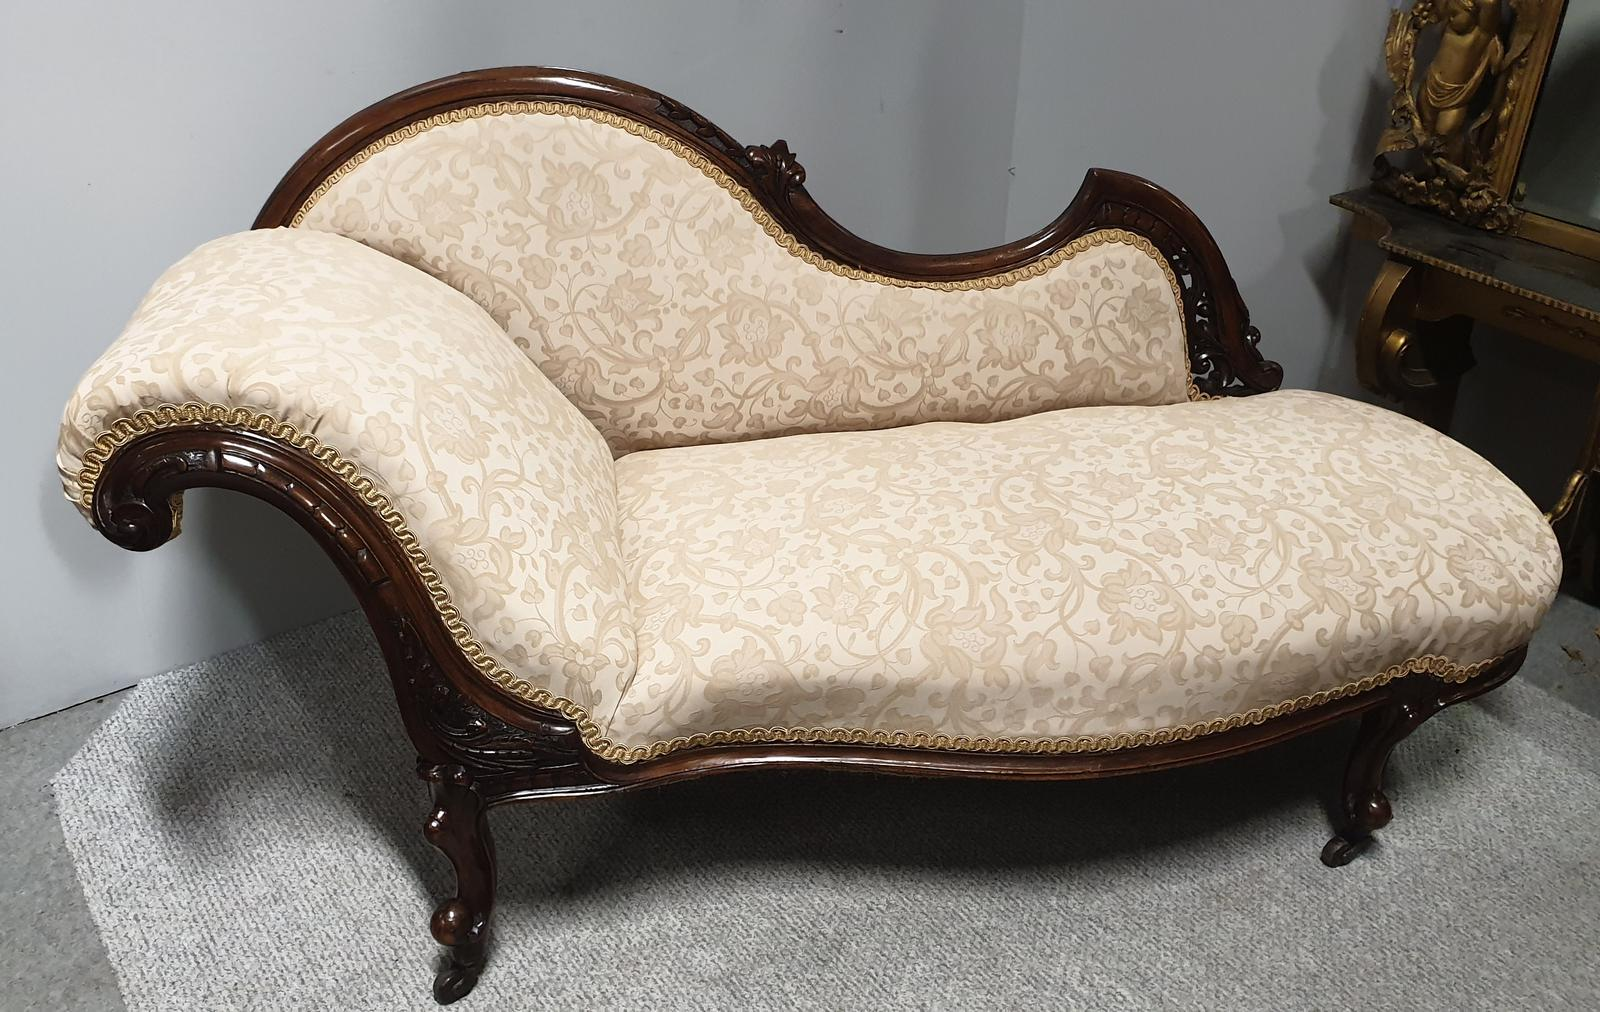 Victorian Chaise Lounge of Small Proportions (1 of 1)